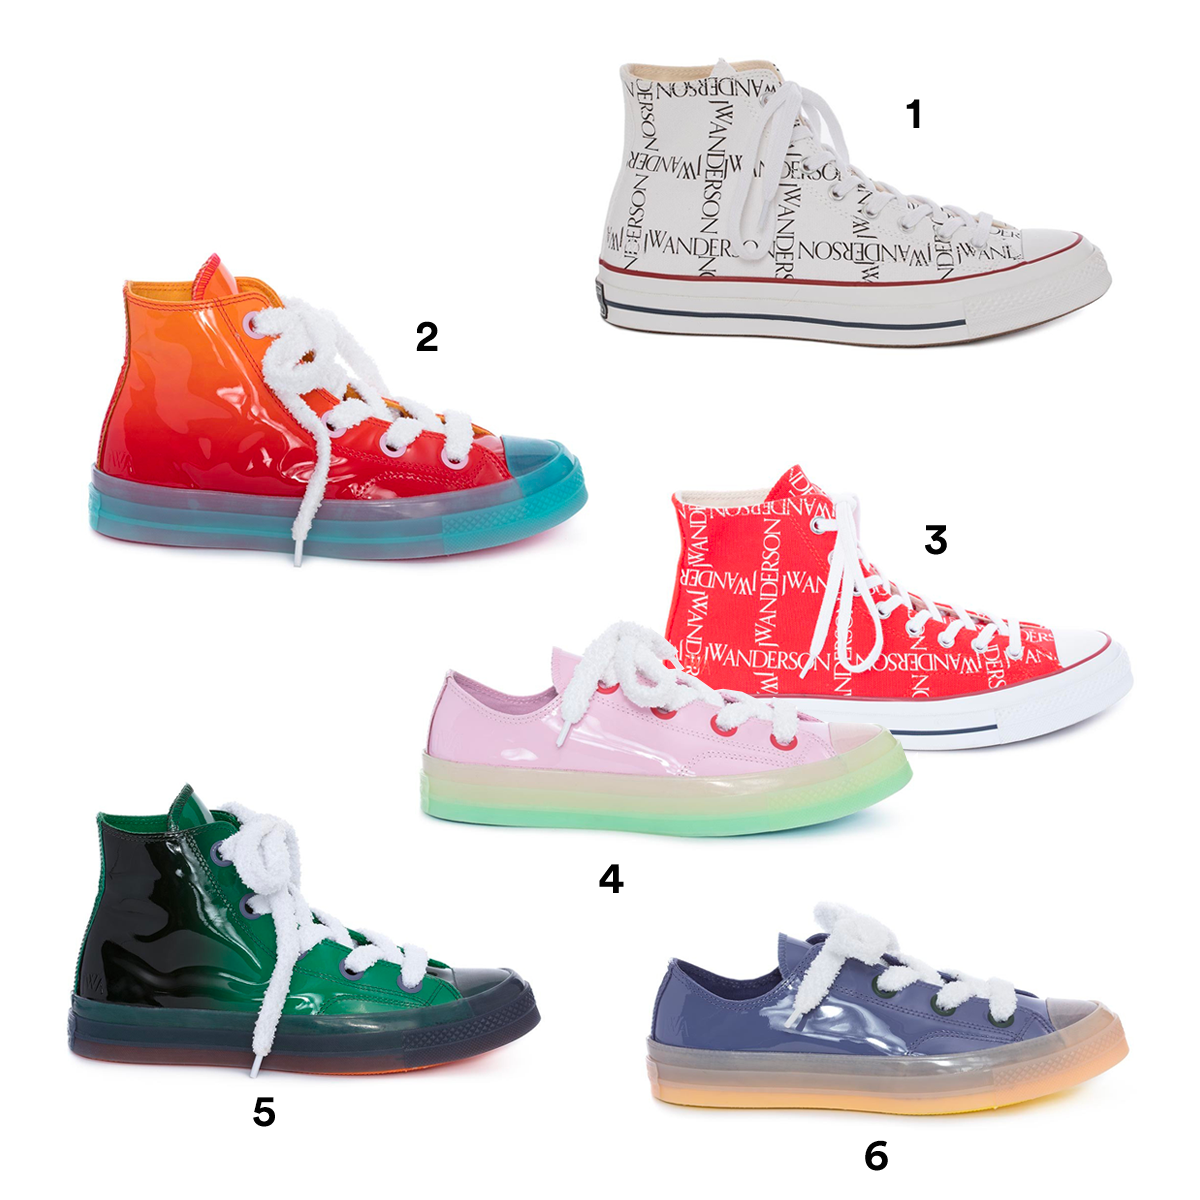 1) JW ANDERSON X CONVERSE White Logo Grid, available at Converse. 2) JW ANDERSON X CONVERSE Fire Patent High Tops, available at Converse. 3) JW ANDERSON X CONVERSE Red Logo Grid, available at Converse. 4) JW ANDERSON X CONVERSE Light Pink Patent Low Tops, available at Converse. 5) JW ANDERSON X CONVERSE Green Patent High Tops, available at Converse. 6) JW ANDERSON X CONVERSE Mauve Patent Low Tops, available at Converse.